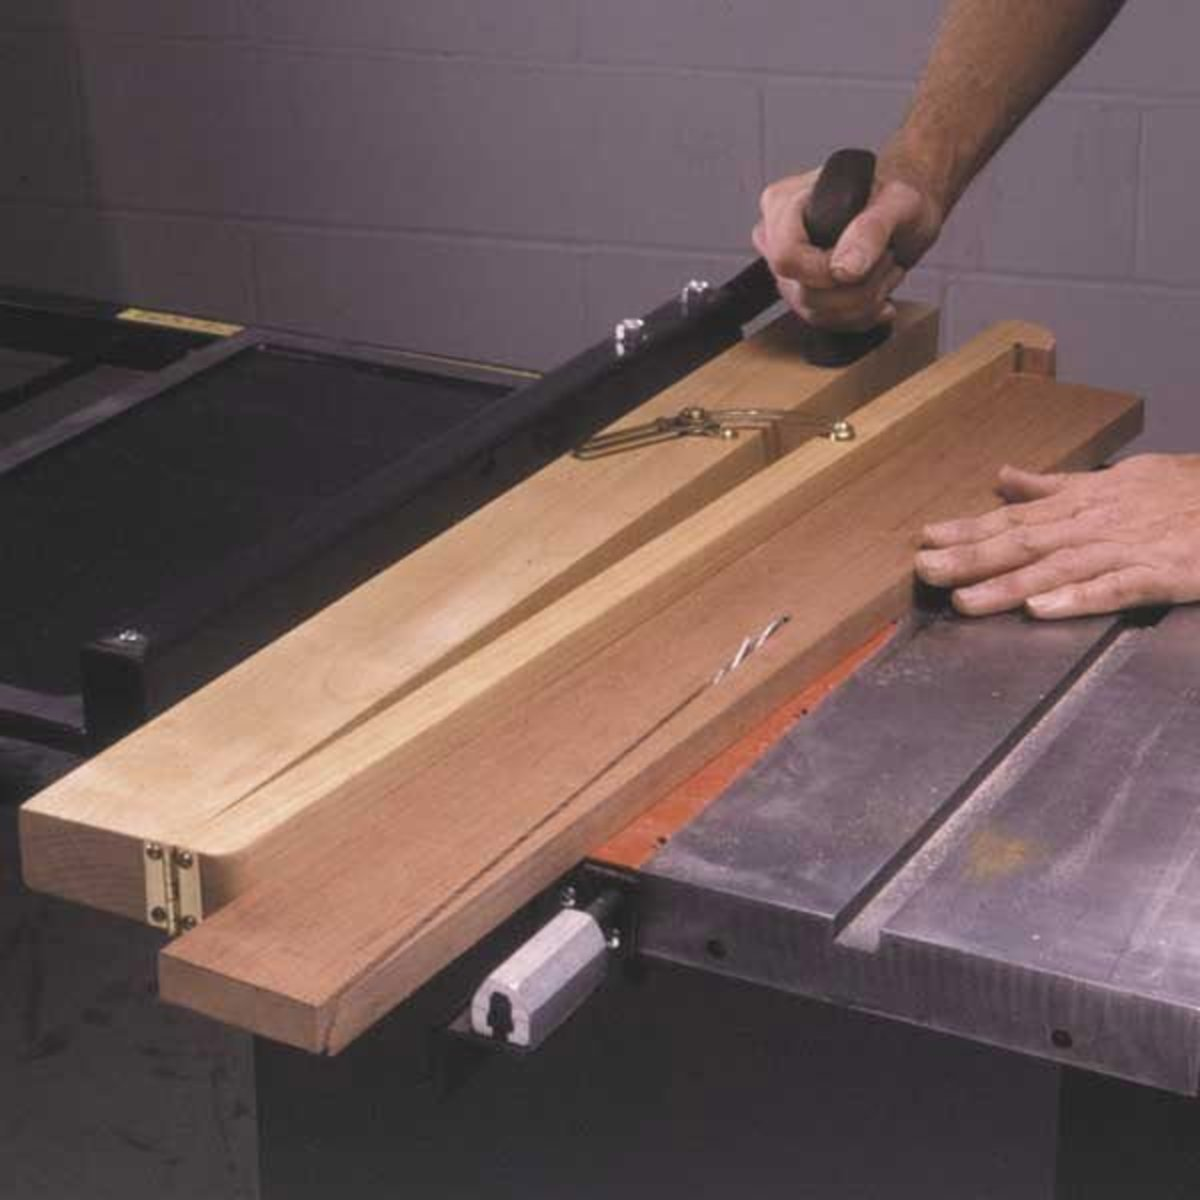 wood magazine - woodworking project paper plan to build